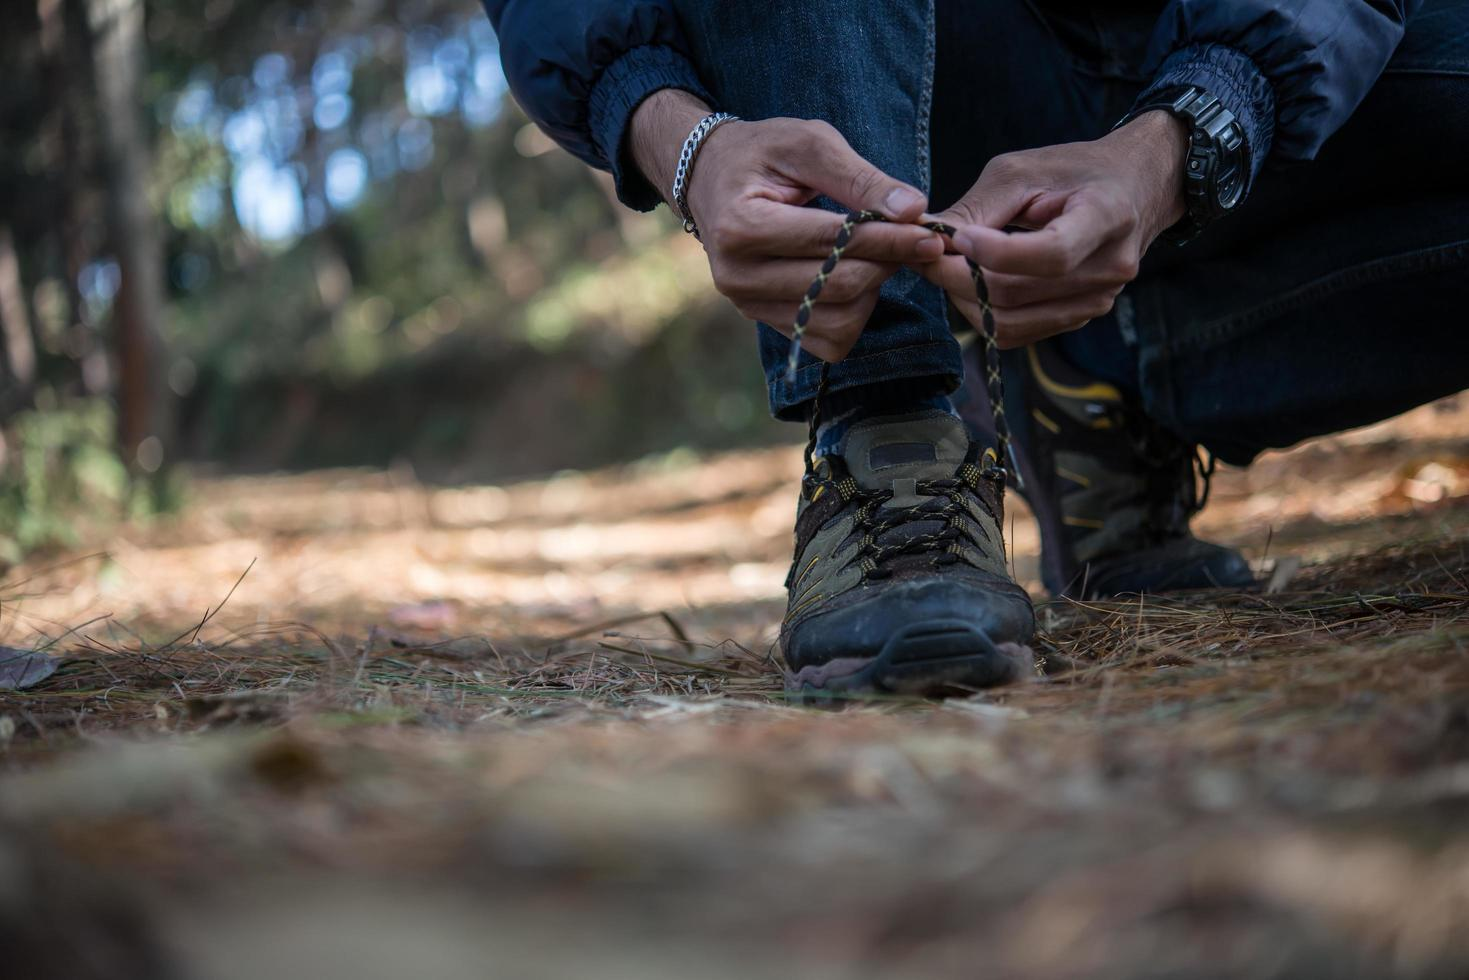 Young hiker man ties his shoe laces while backpacking in the forest photo